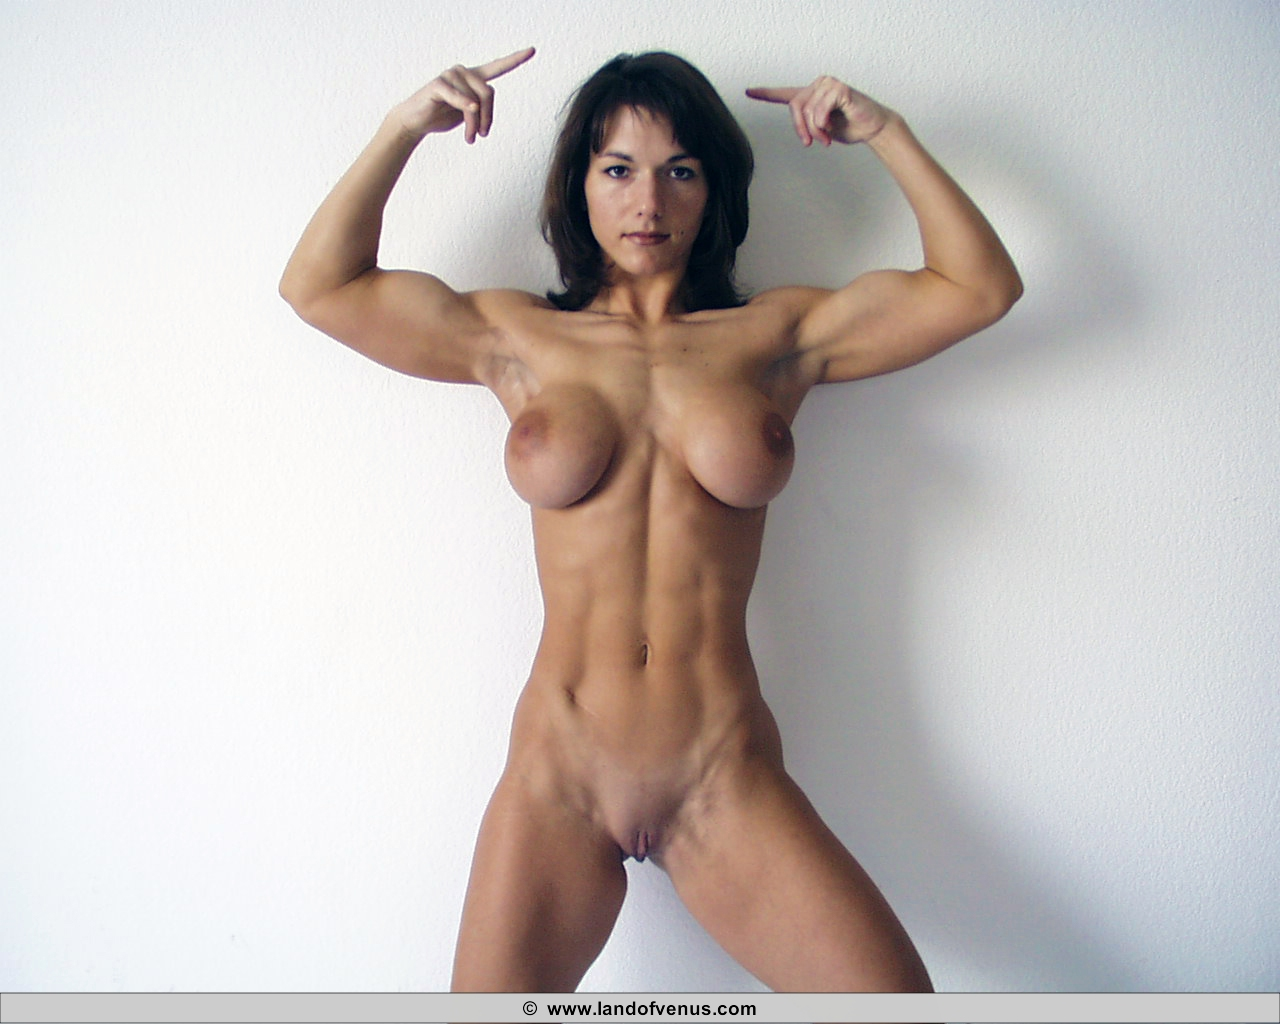 Hot Body Building Woman Of Porn